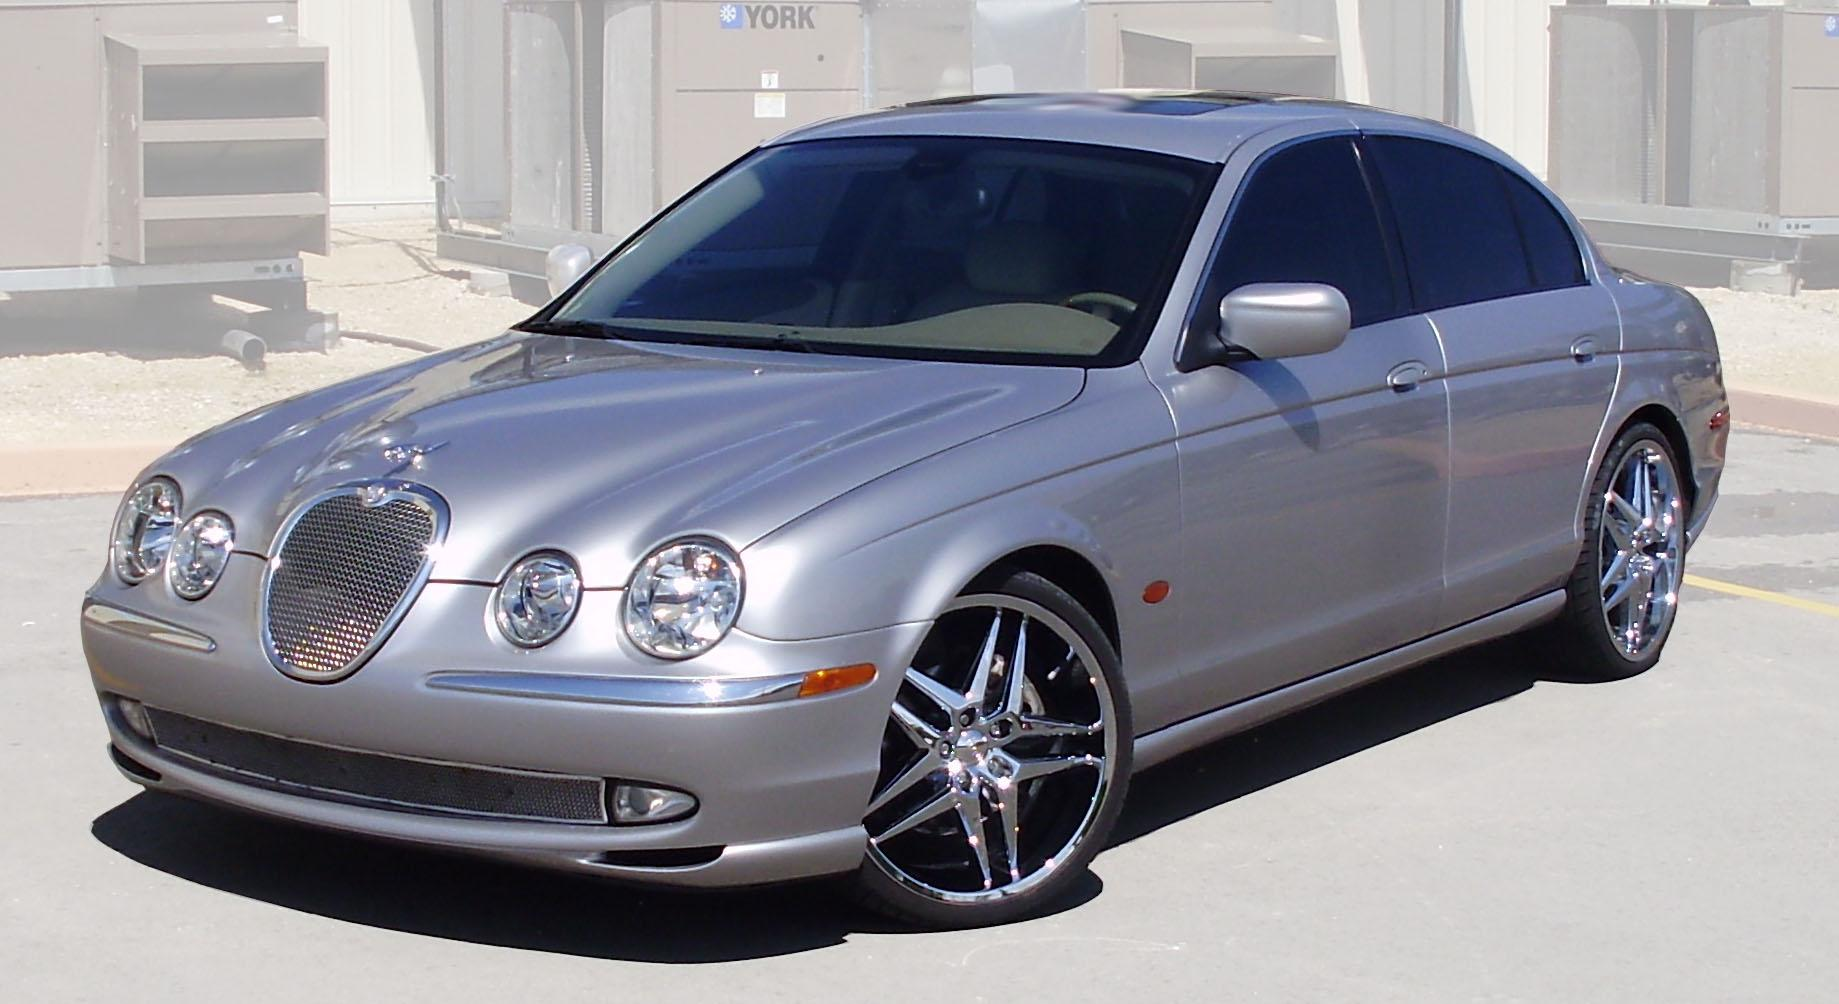 2001 Jaguar S-type #6